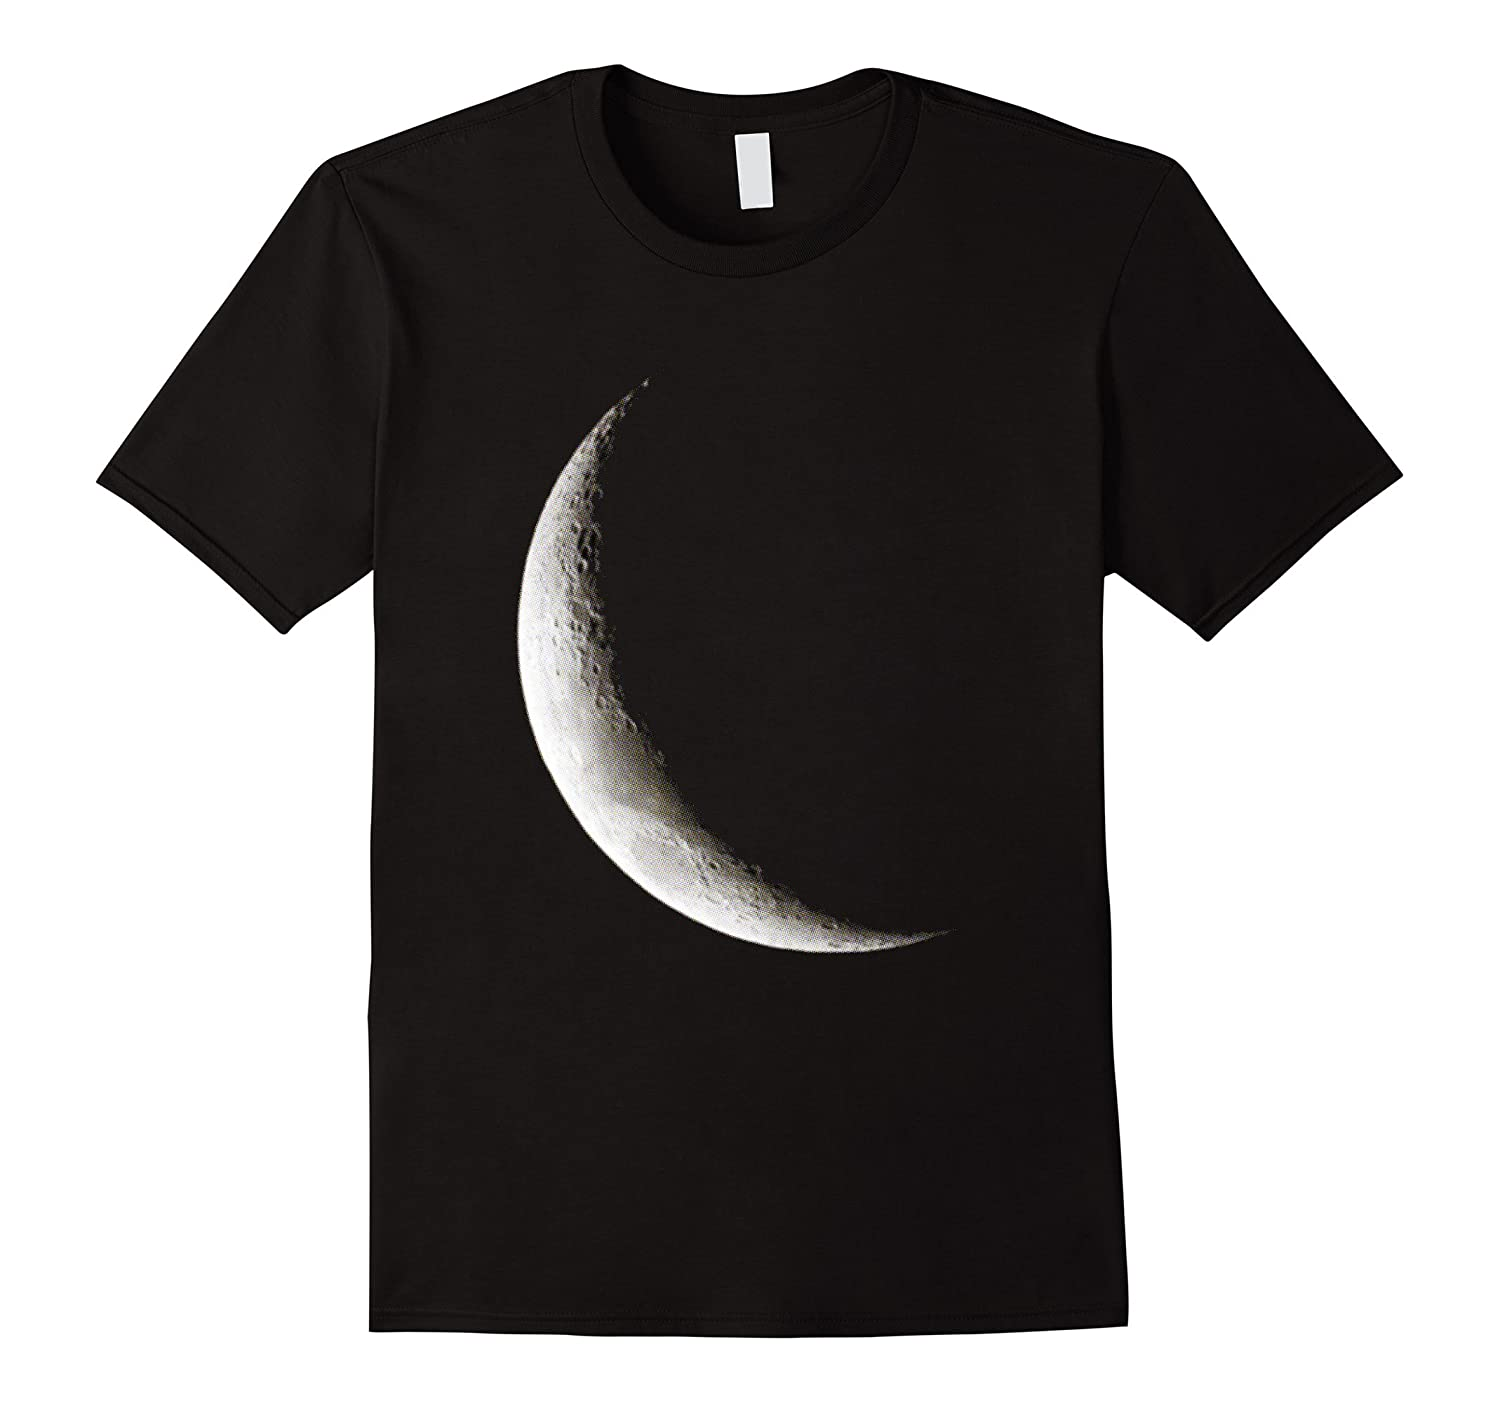 Awesome Luna Half Moon- T-Shirt - Mens & Womens Sizes-T-Shirt